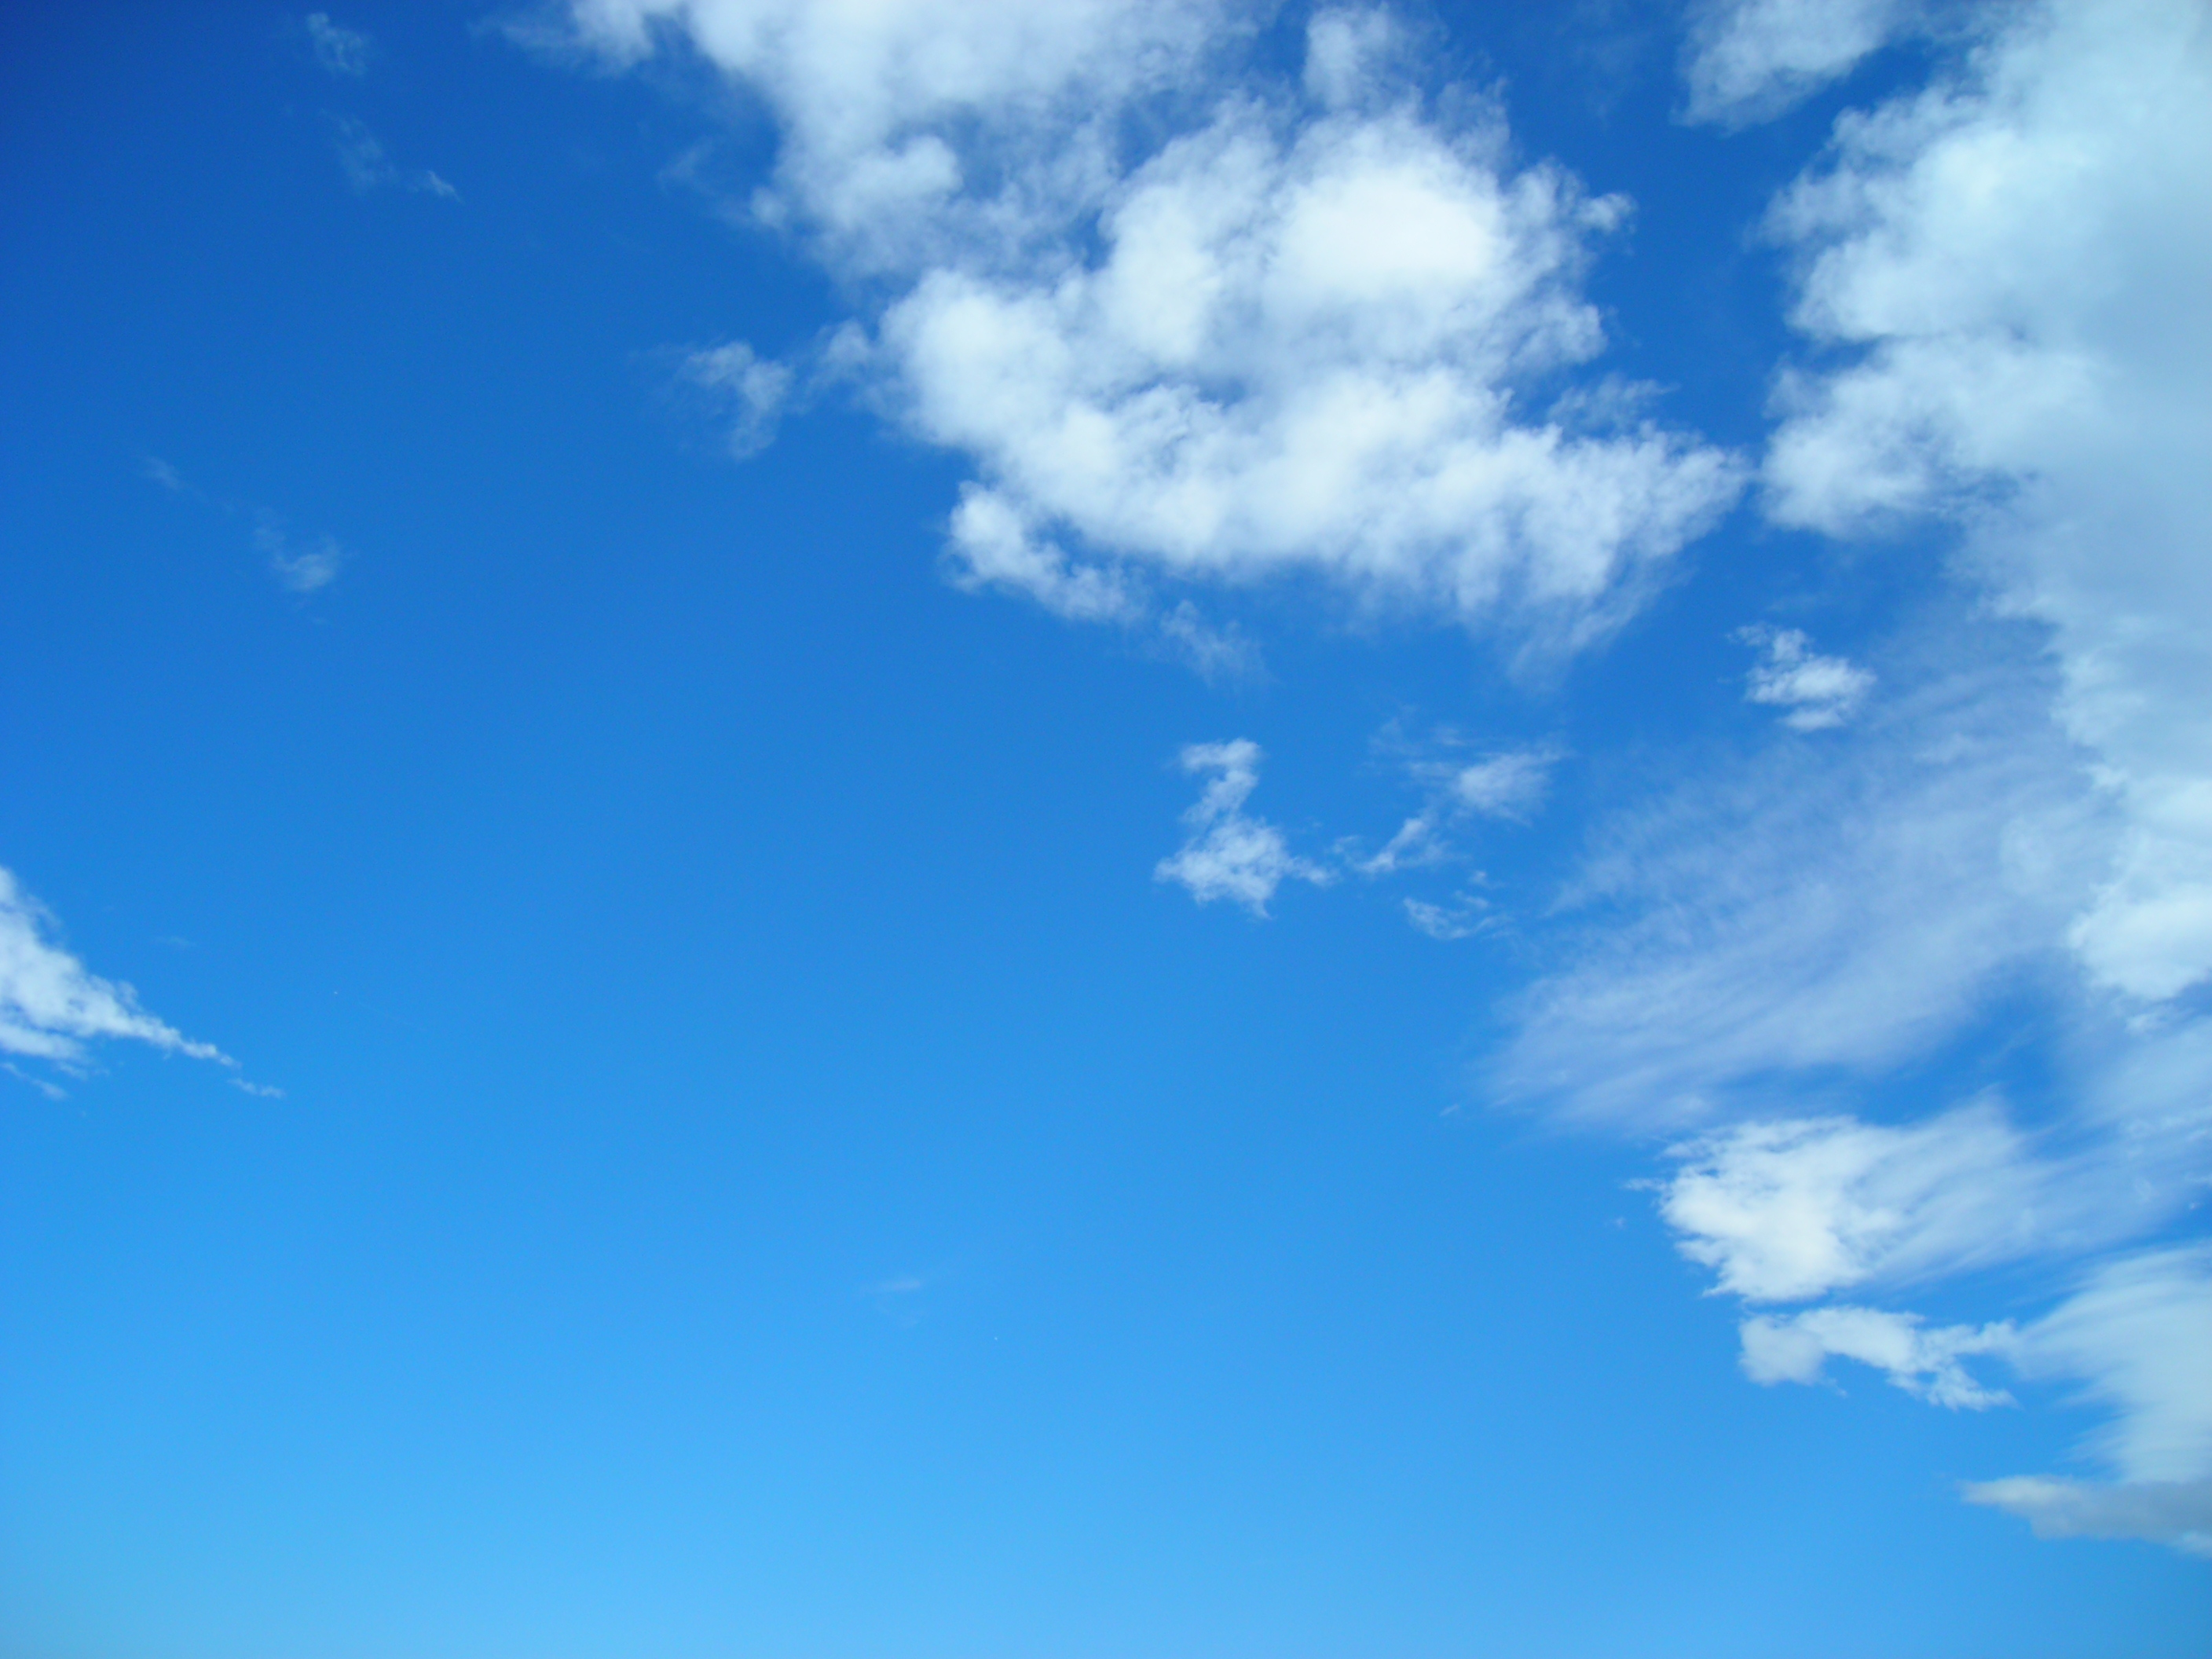 All sizes | Blue sky 2 | Flickr - Photo Sharing!